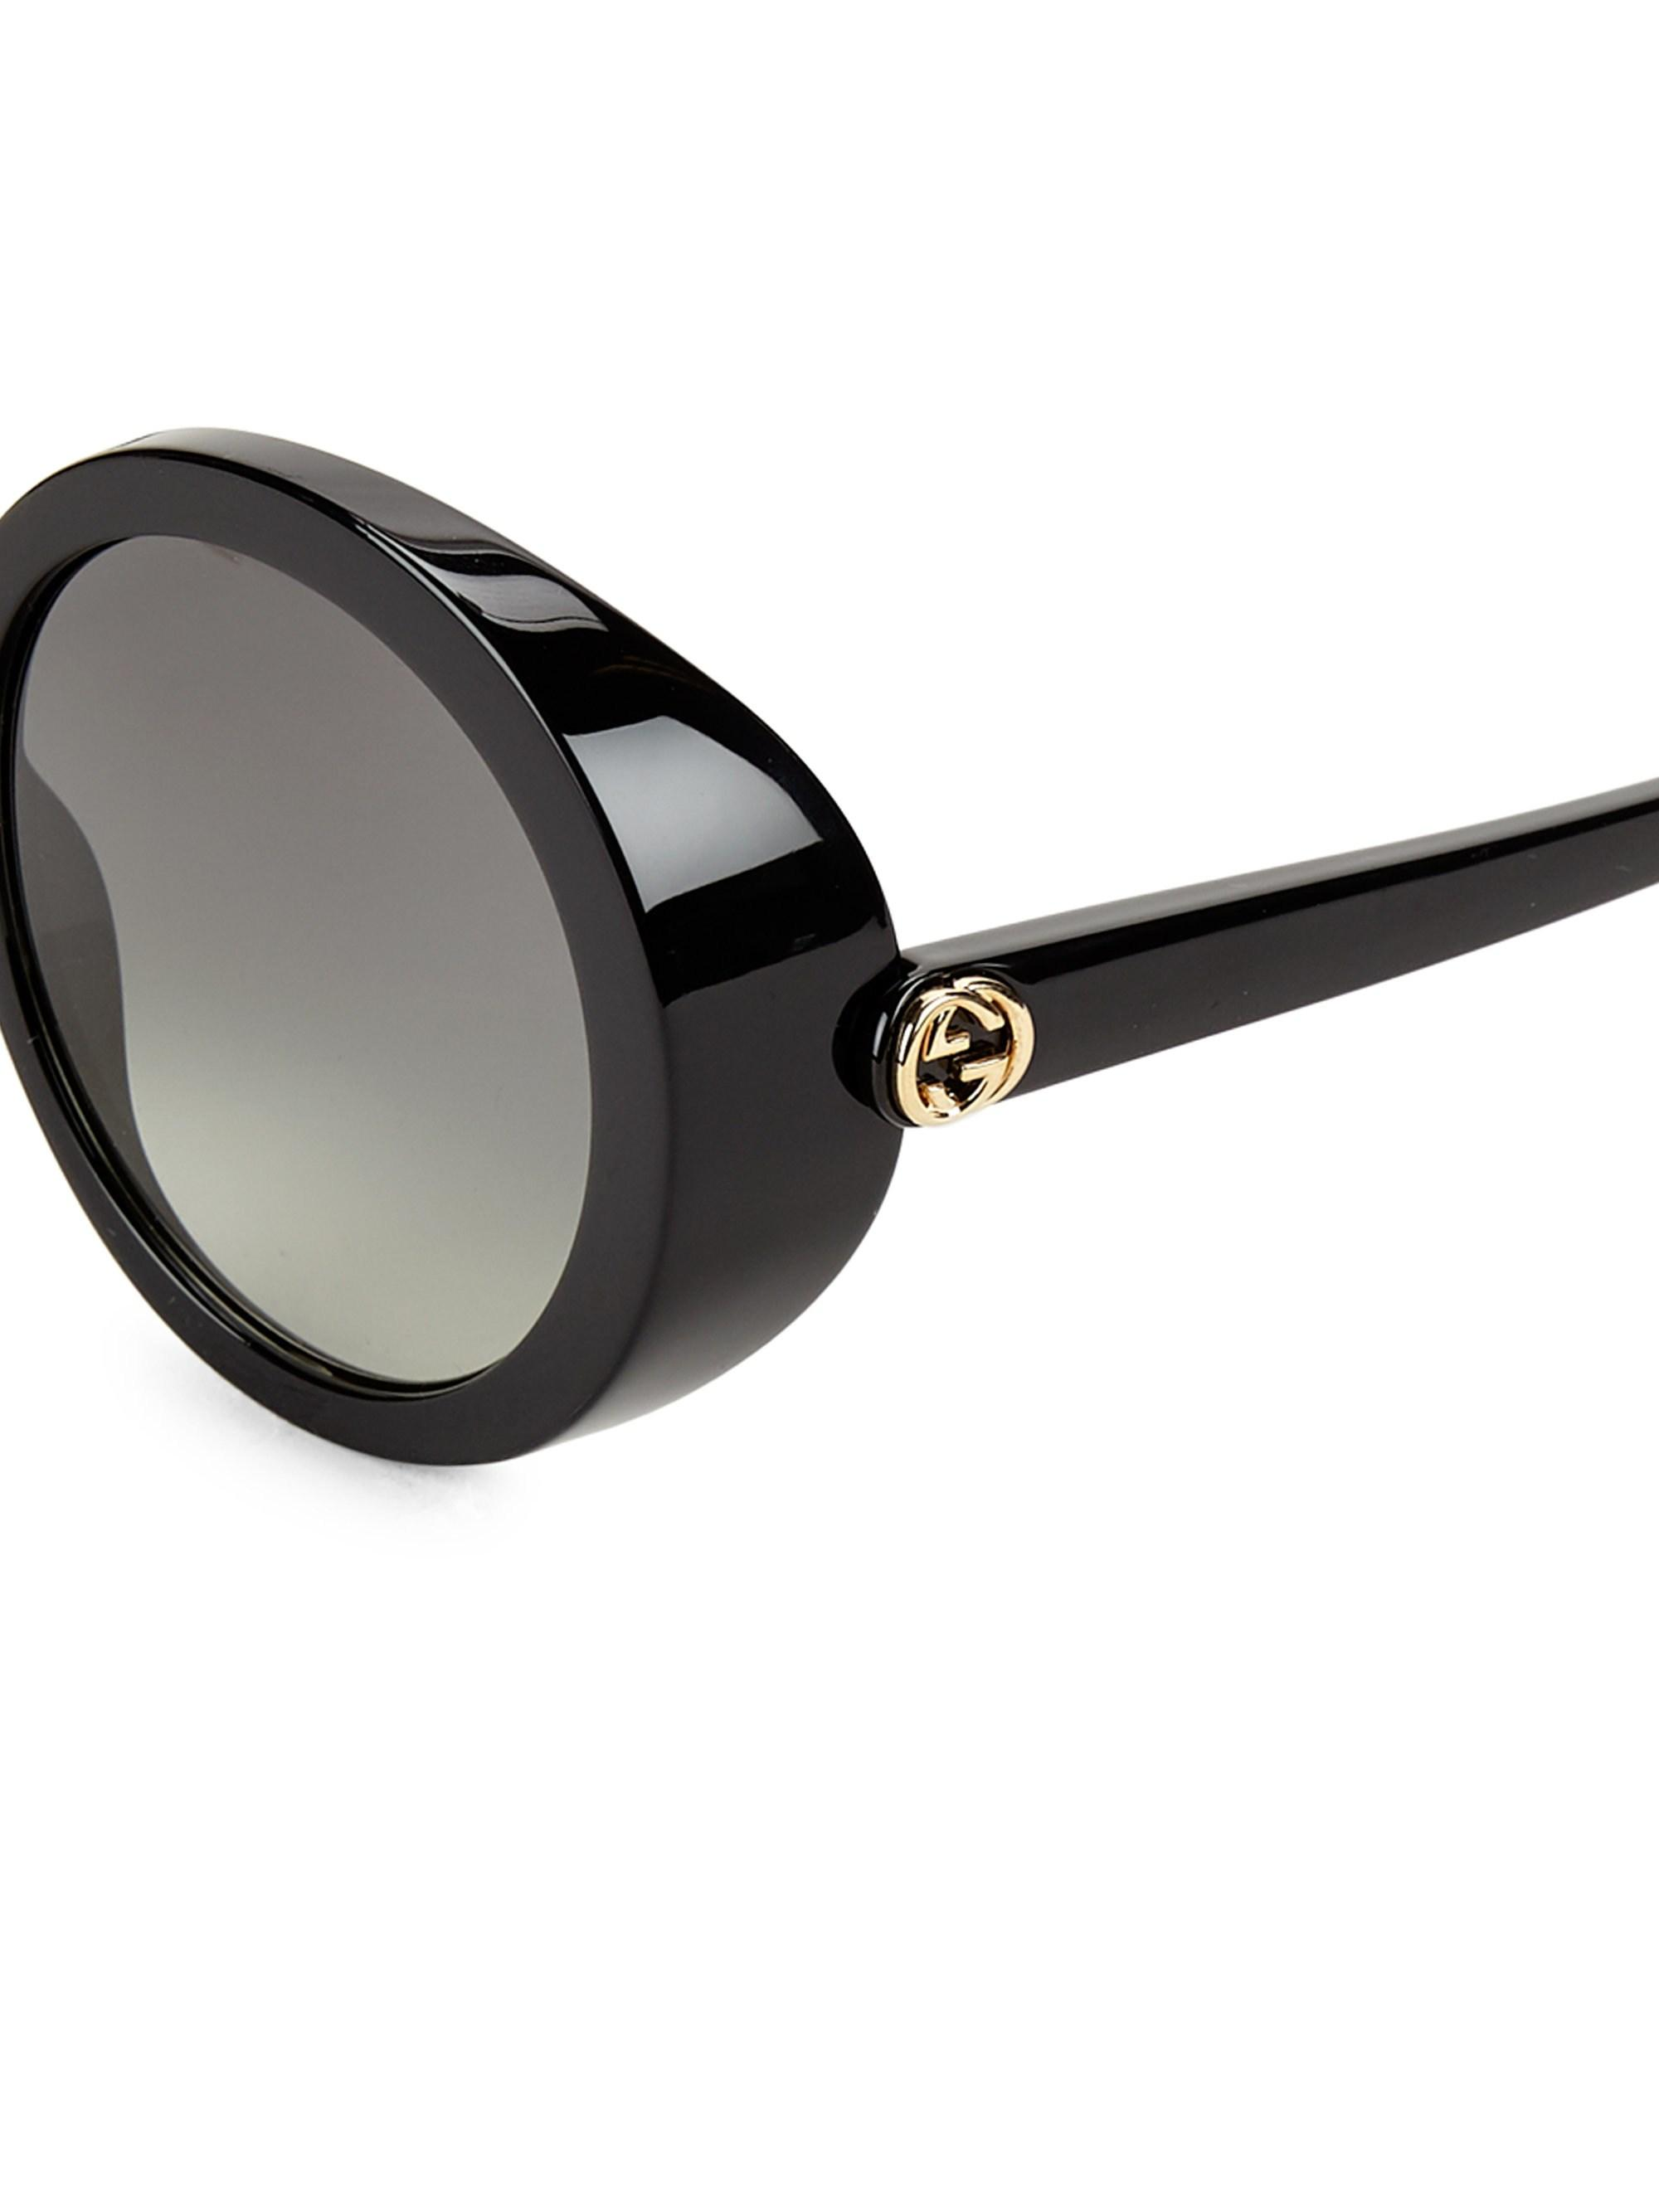 13c11c32fc Lyst - Gucci Women s 52mm Round Sunglasses - Black in Black